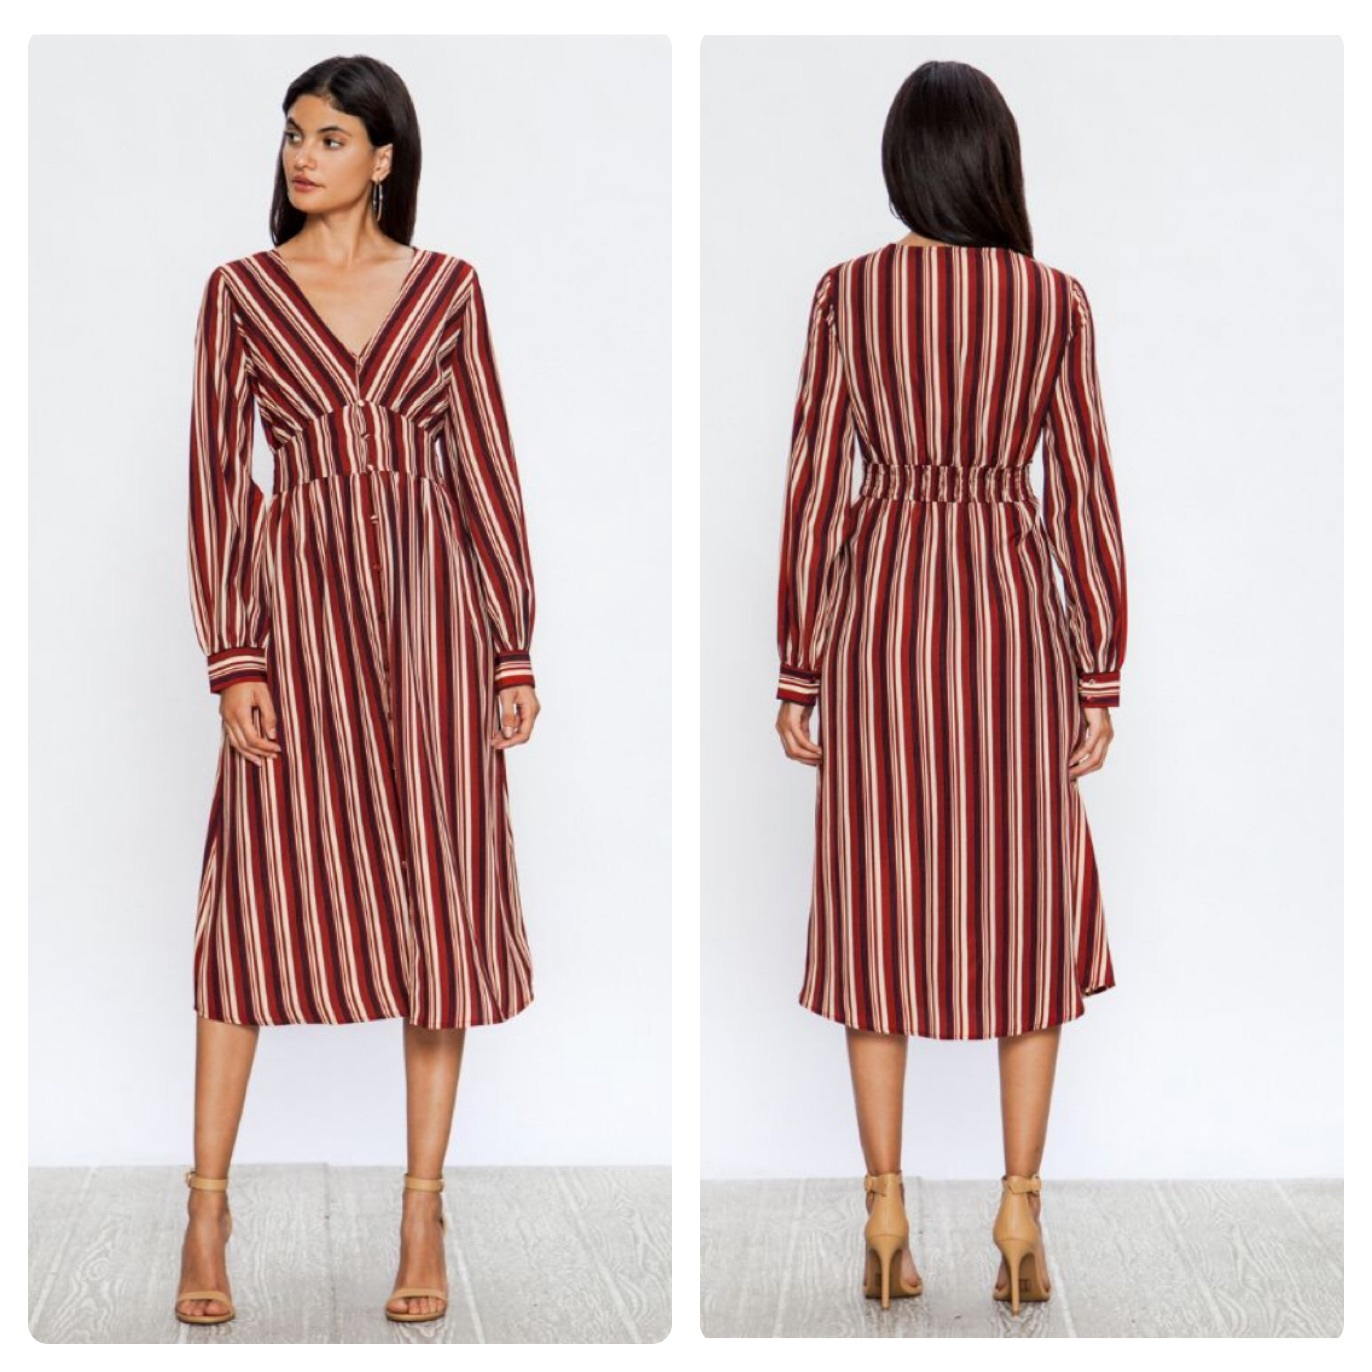 RED STRIPE DRESS $46